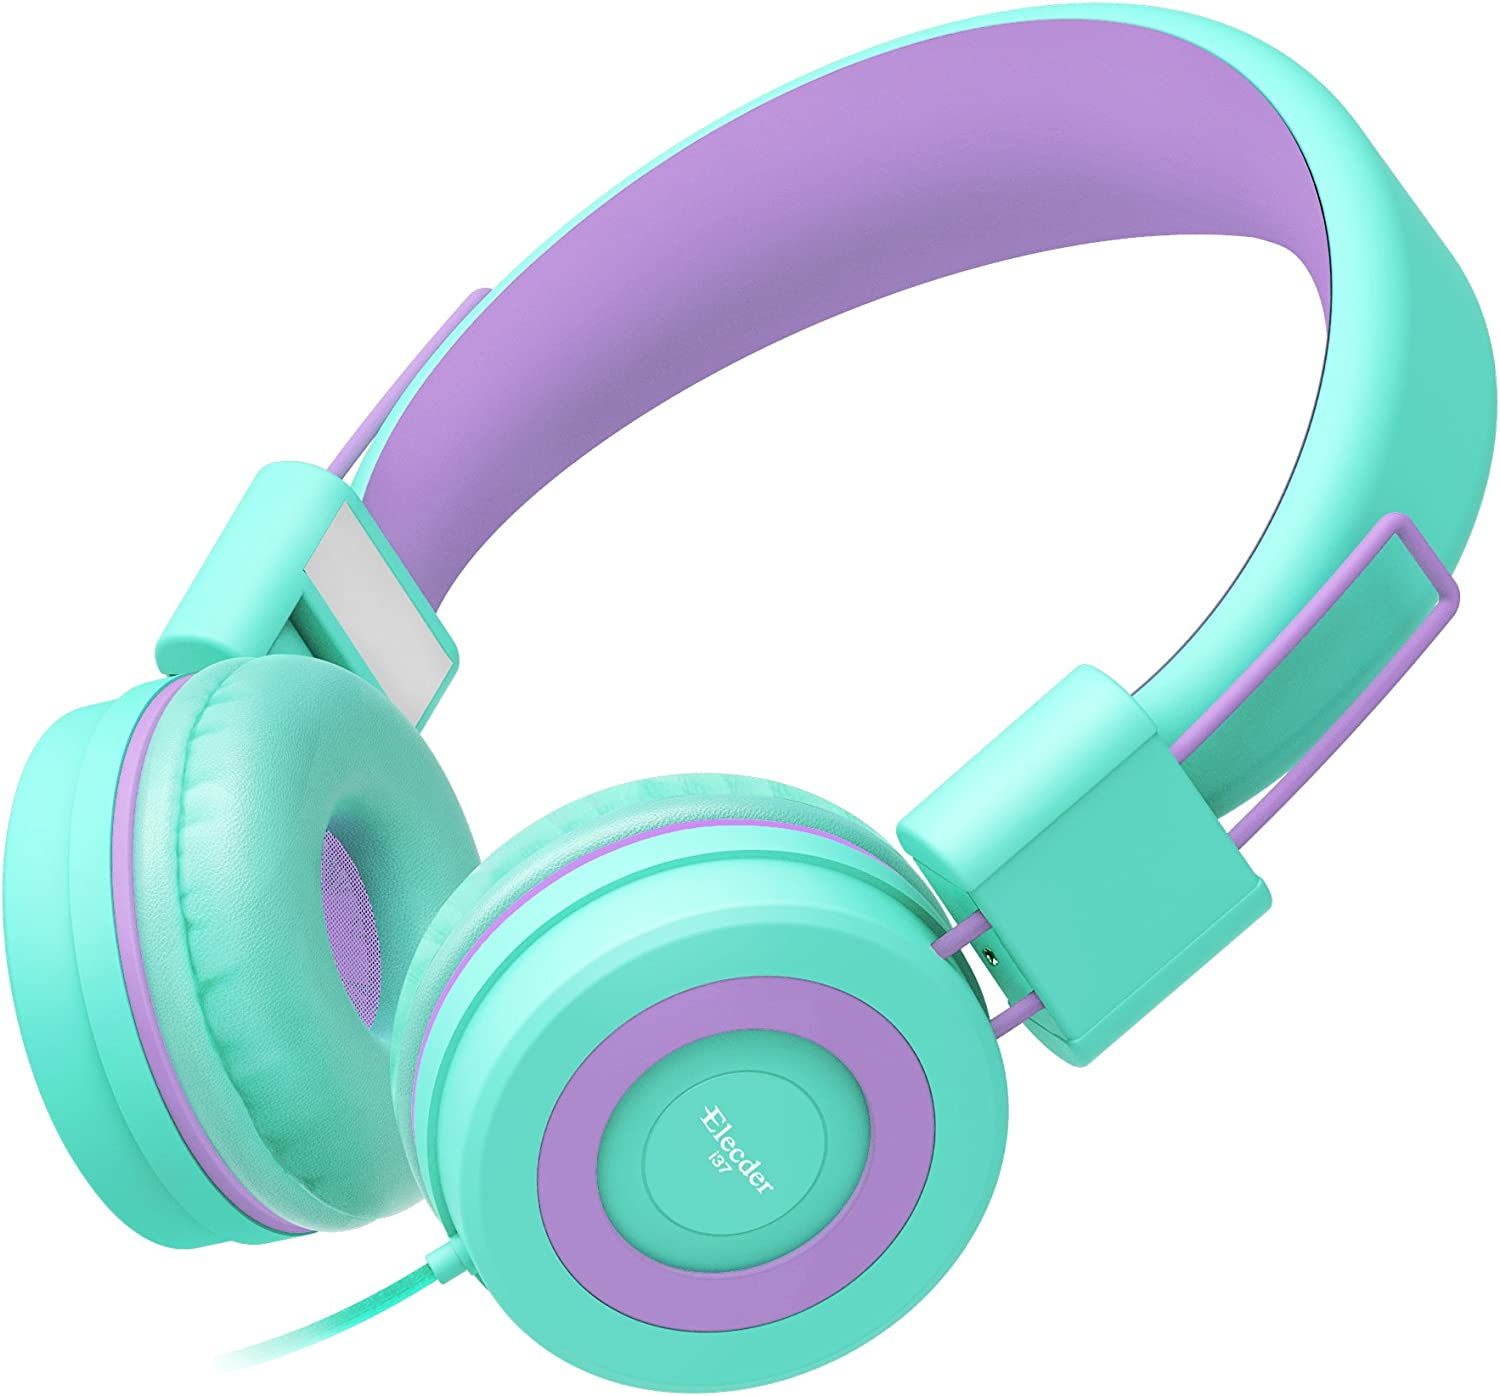 Elecder i37 Kids Headphones Children Girls Boys Teens Foldable Adjustable On Ear Headphones 3 5mm Jack Compatible iPad Cellphones Computer MP3 4 Kindle Airplane School Tablet Green Purple